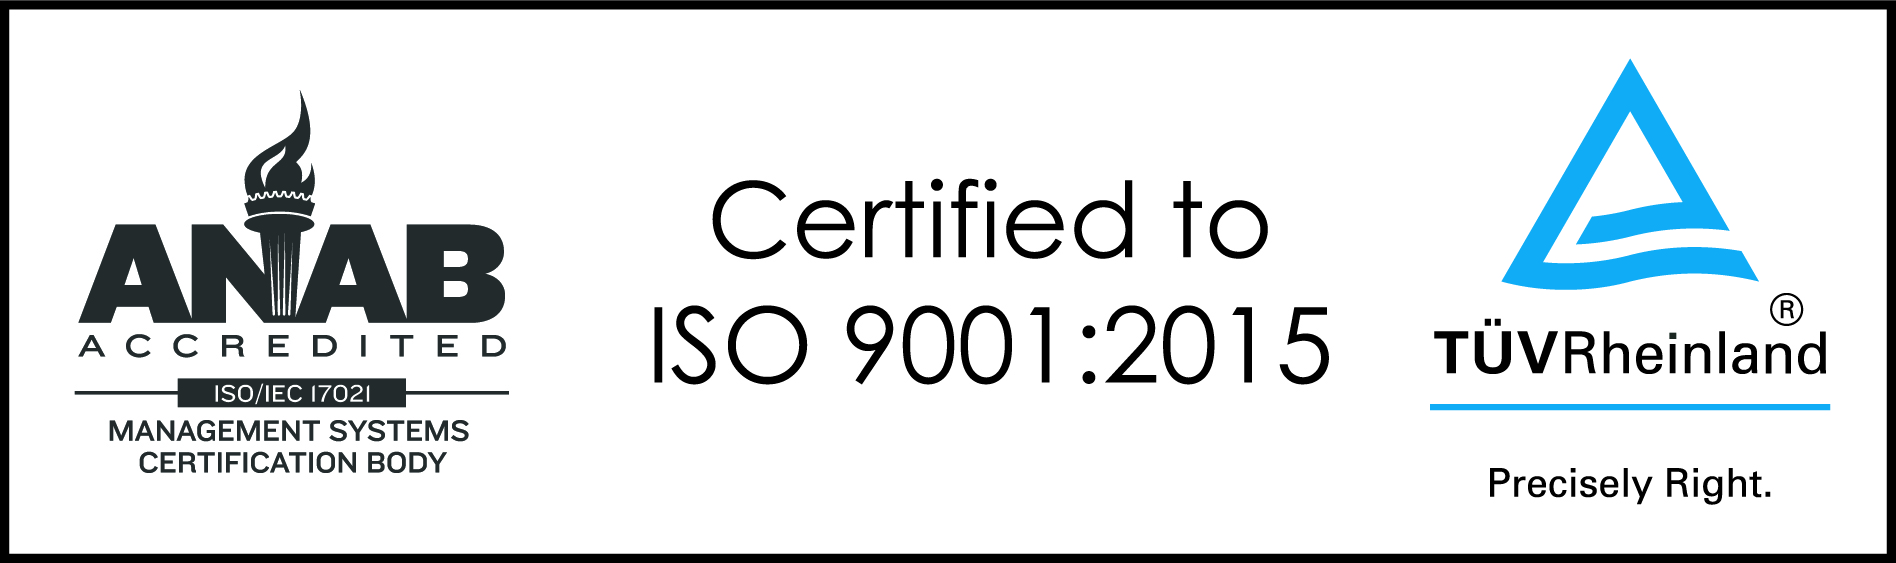 03 ISO 9001 2015 horizontal BW Color